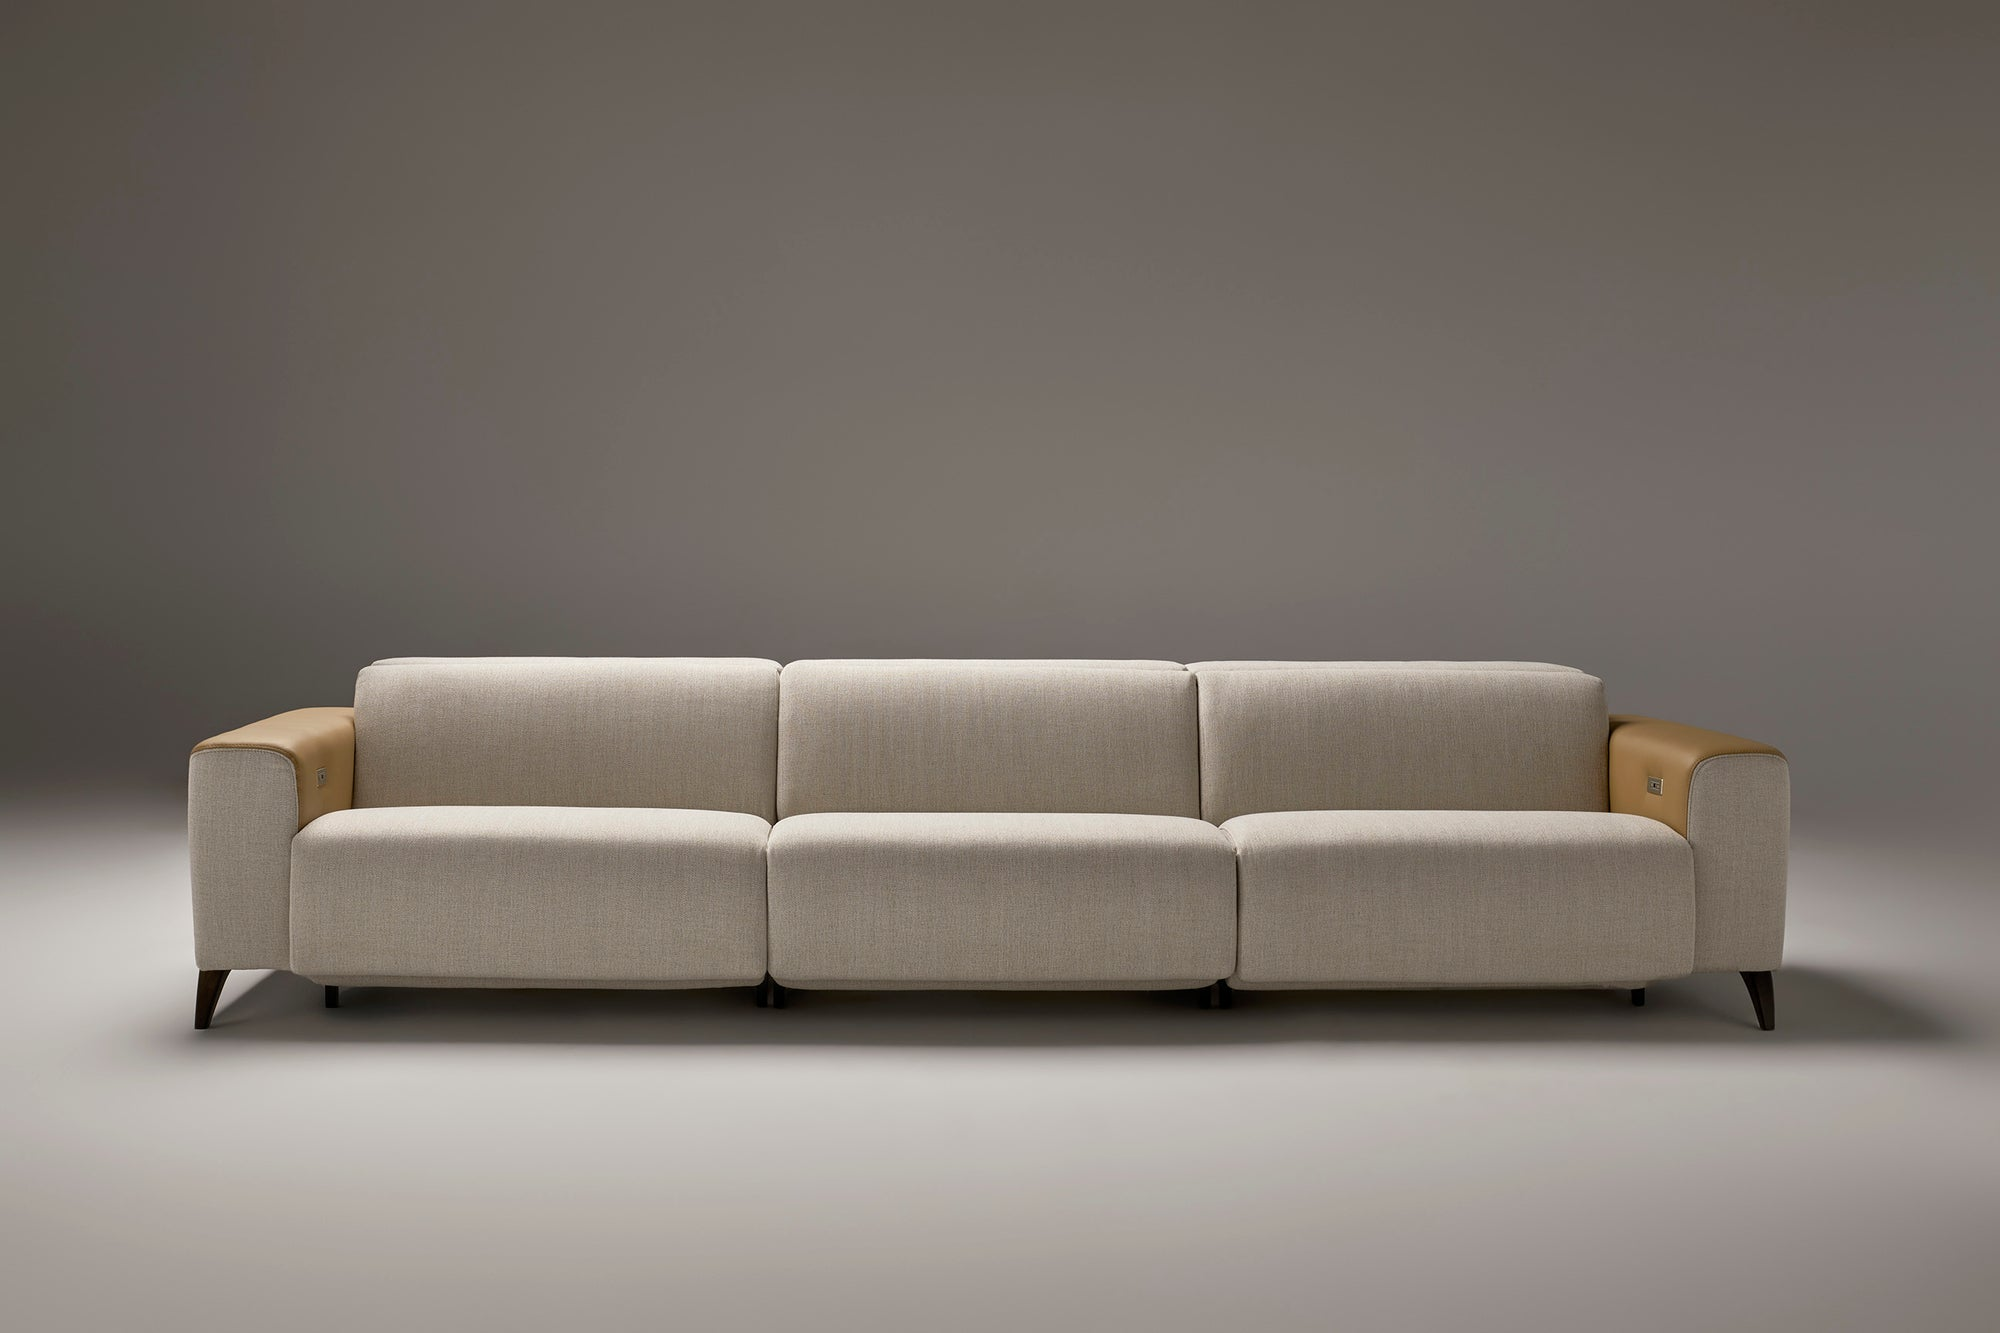 Atlanta 3 Seater Sofa